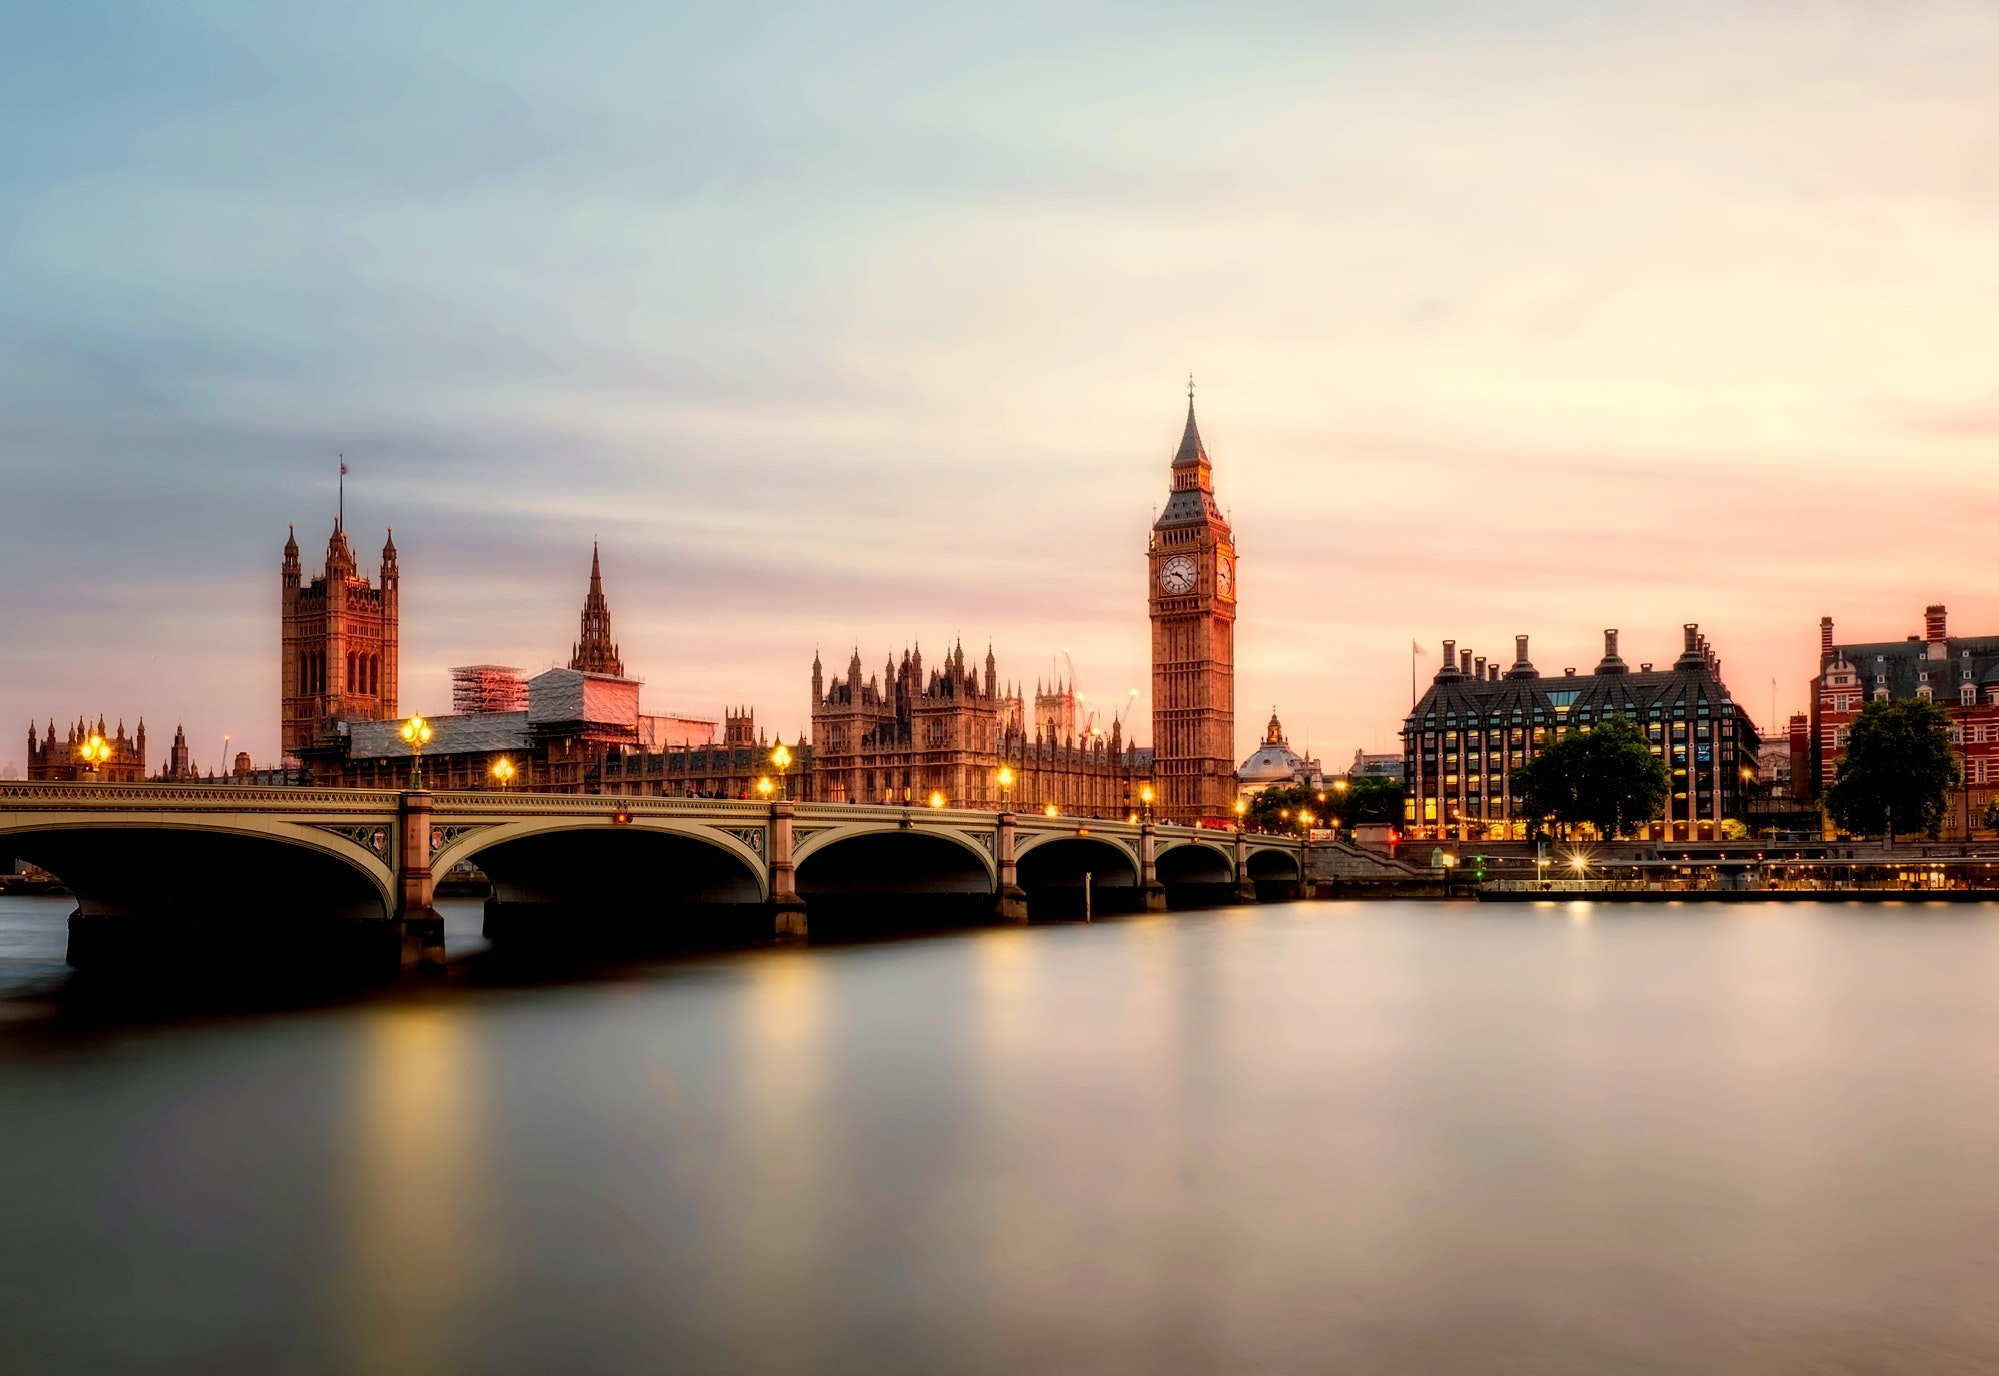 Historical places to visit in England